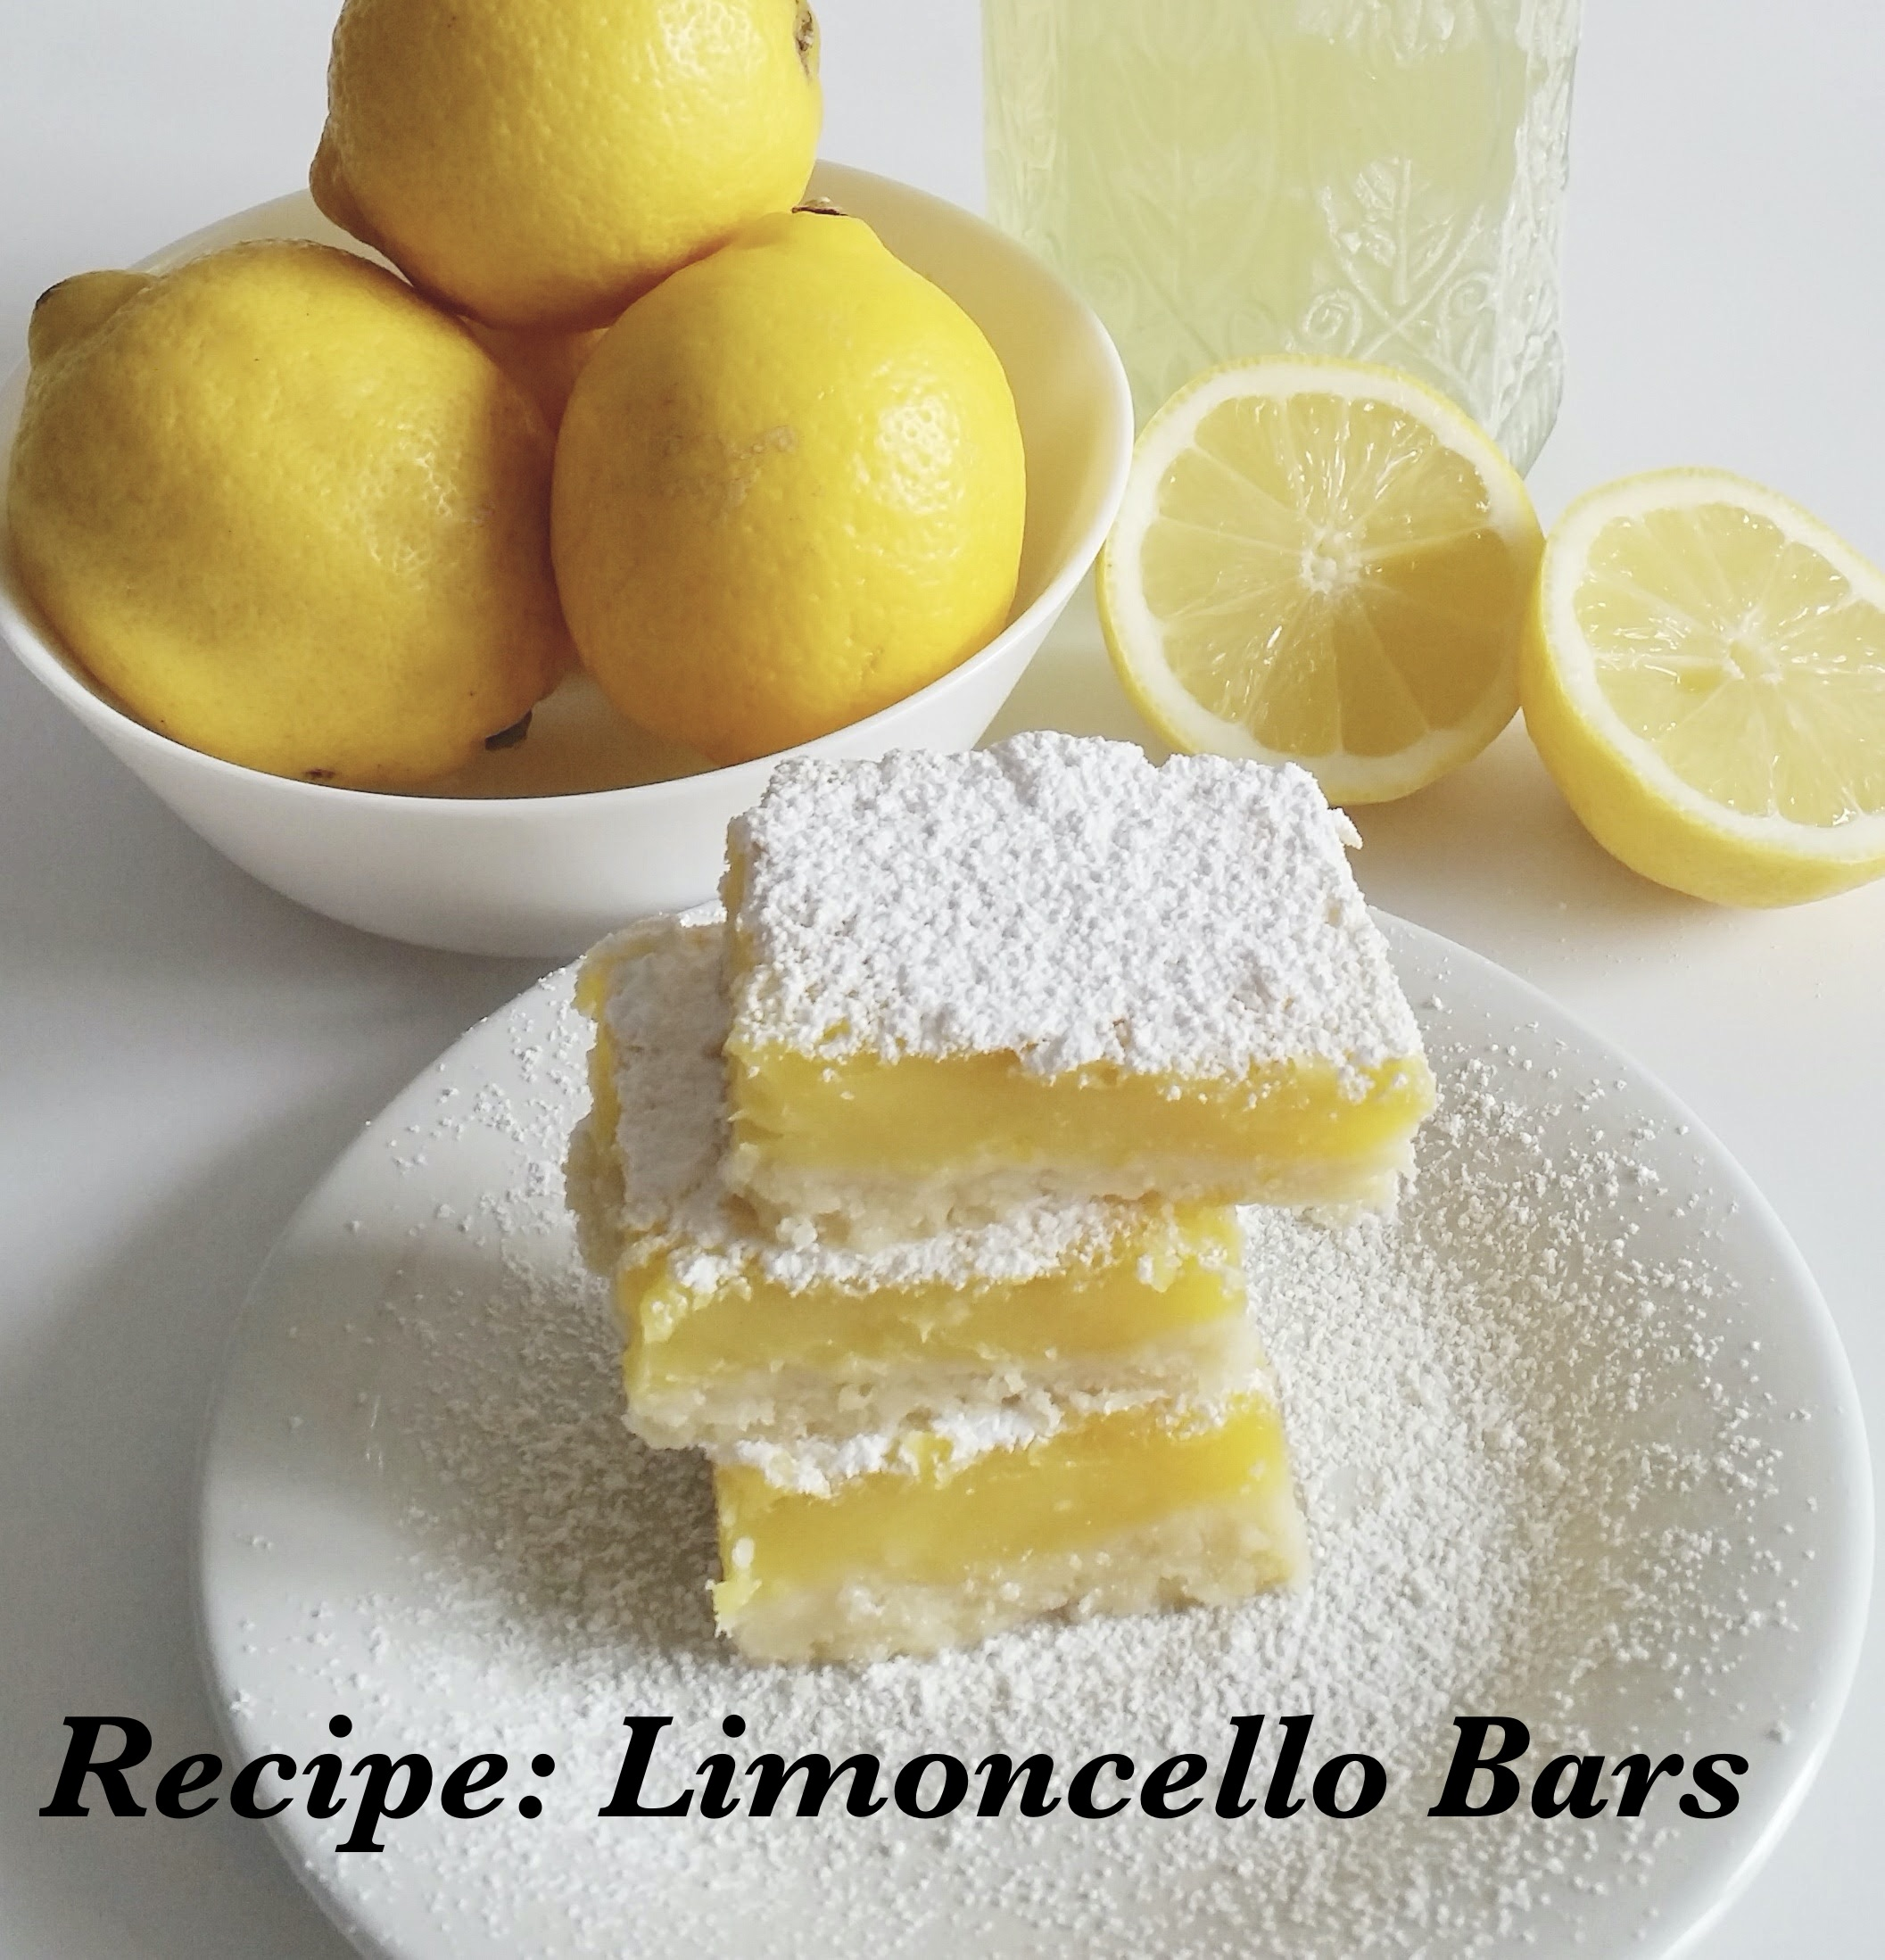 Recipe for Limoncello Bars